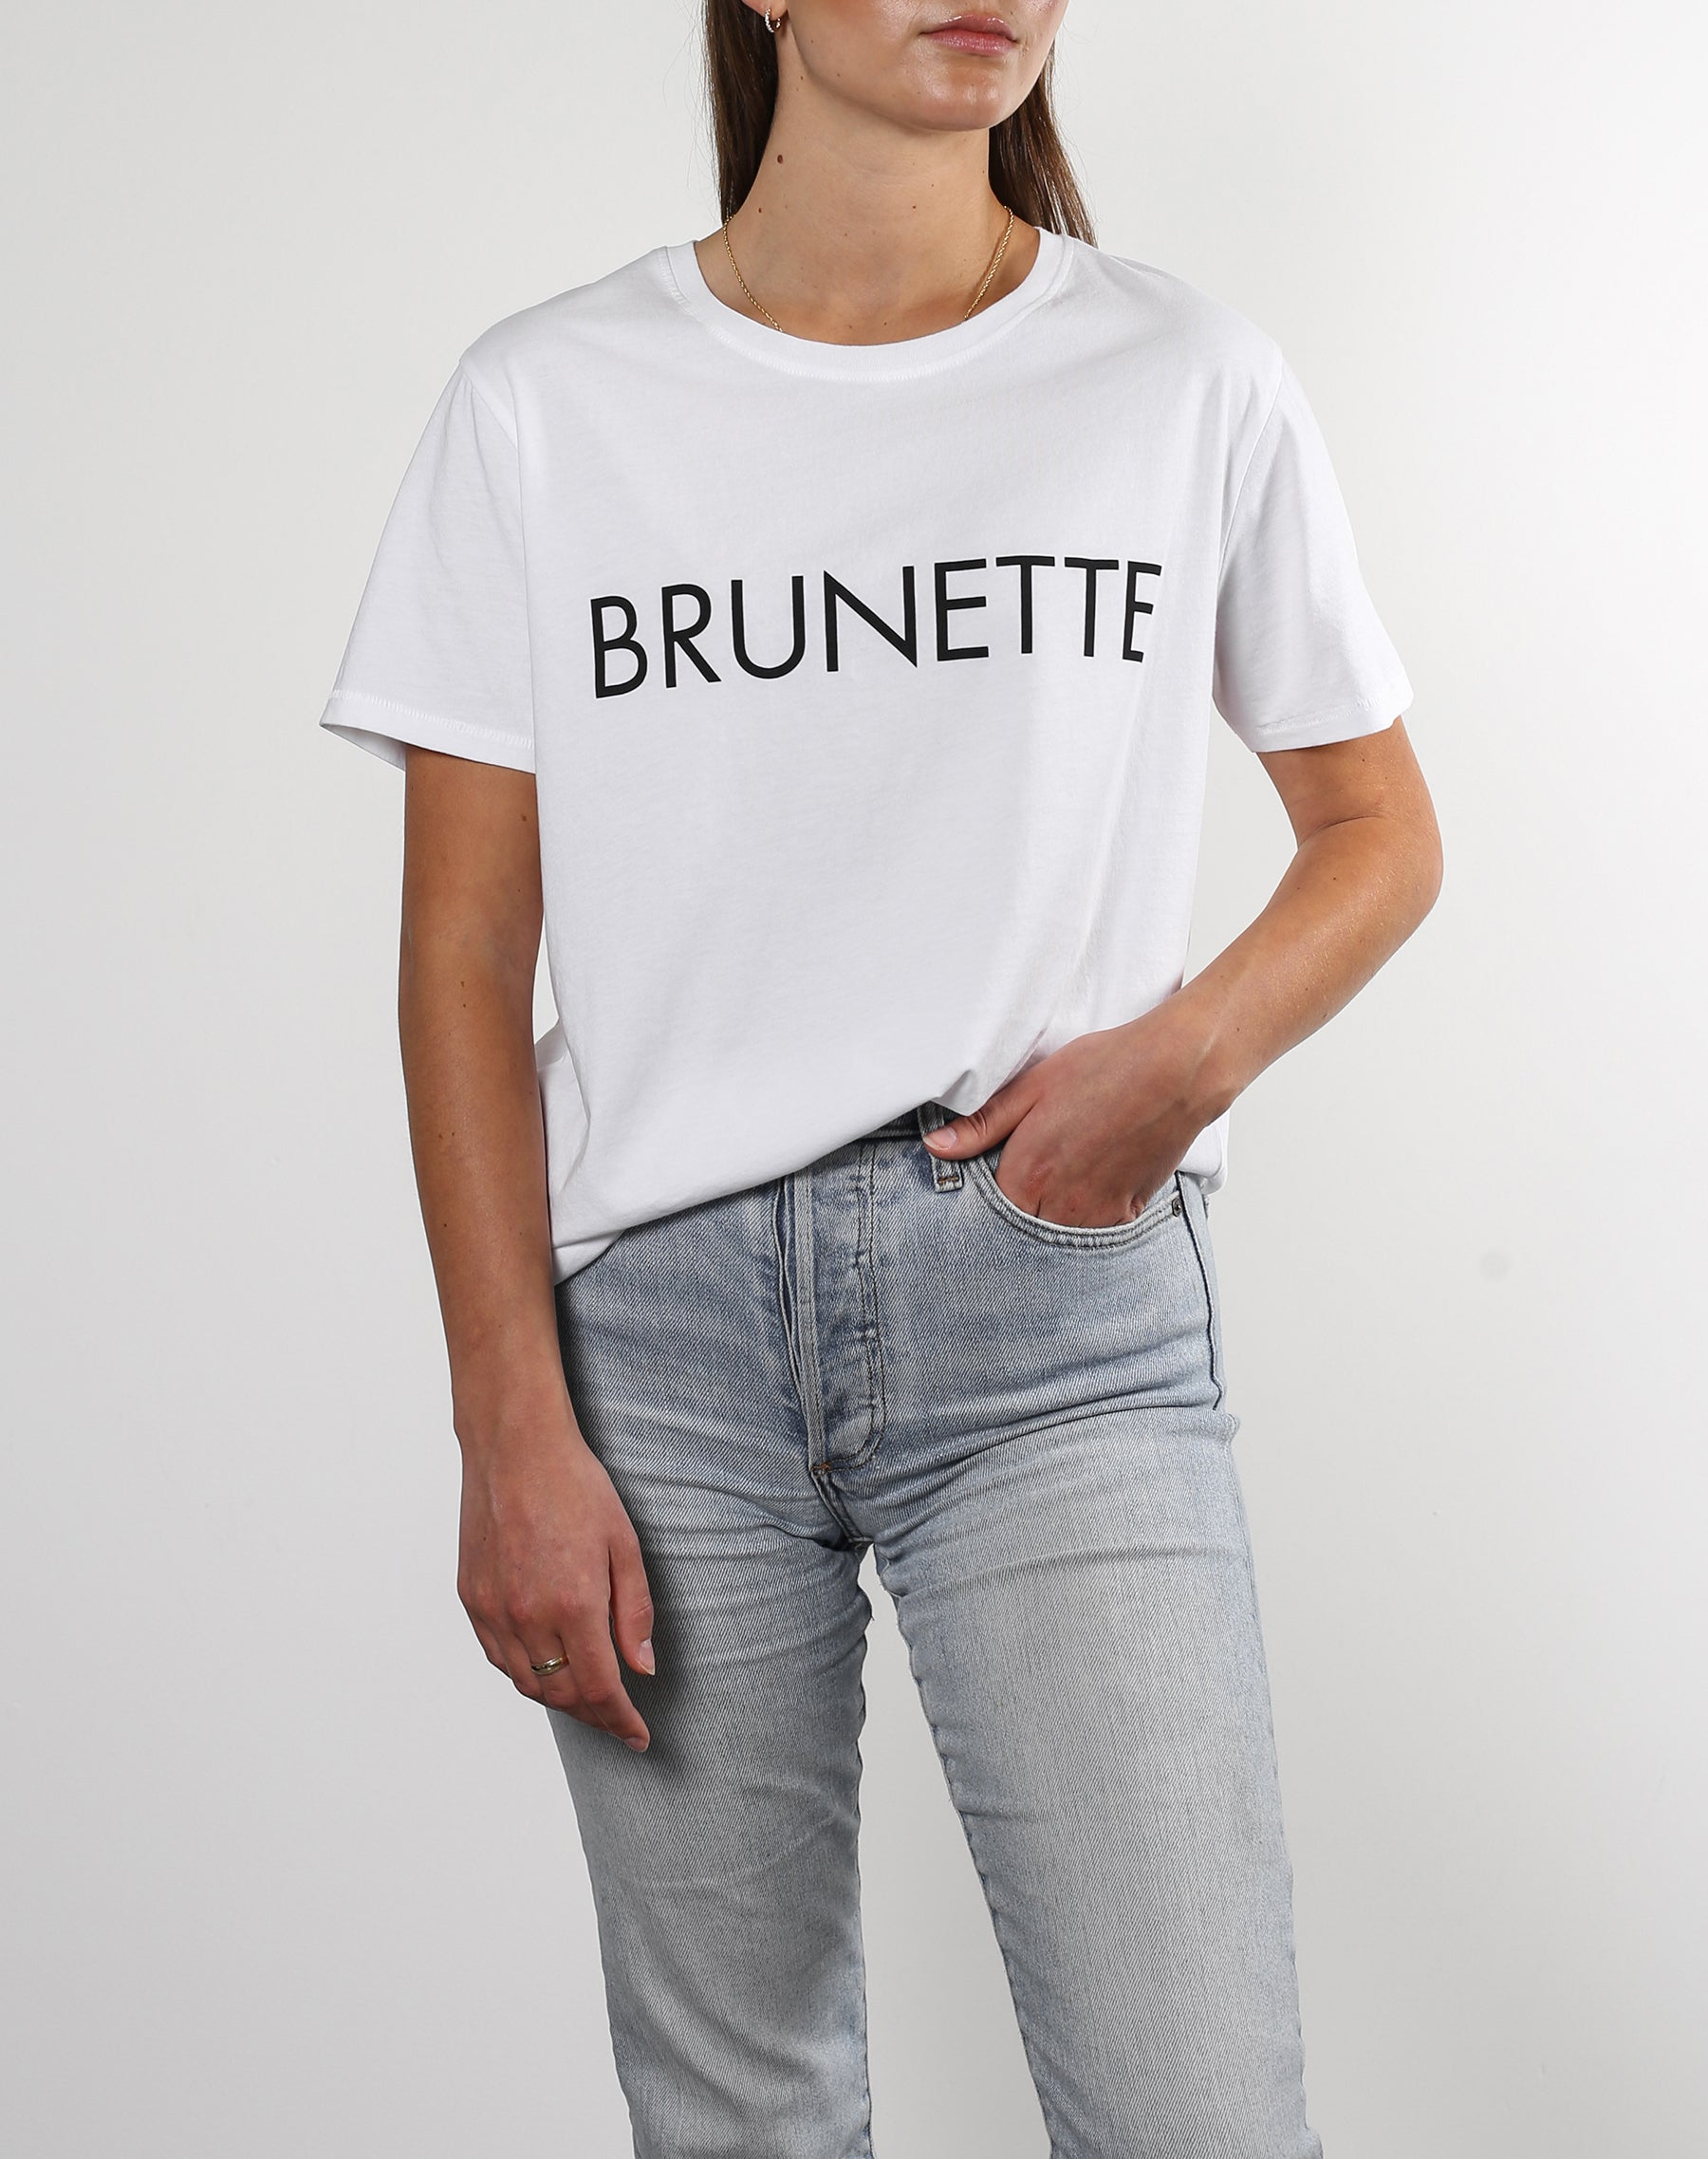 This is a photo of a model wearing the brunette classic crew neck tee in white by brunette the label.